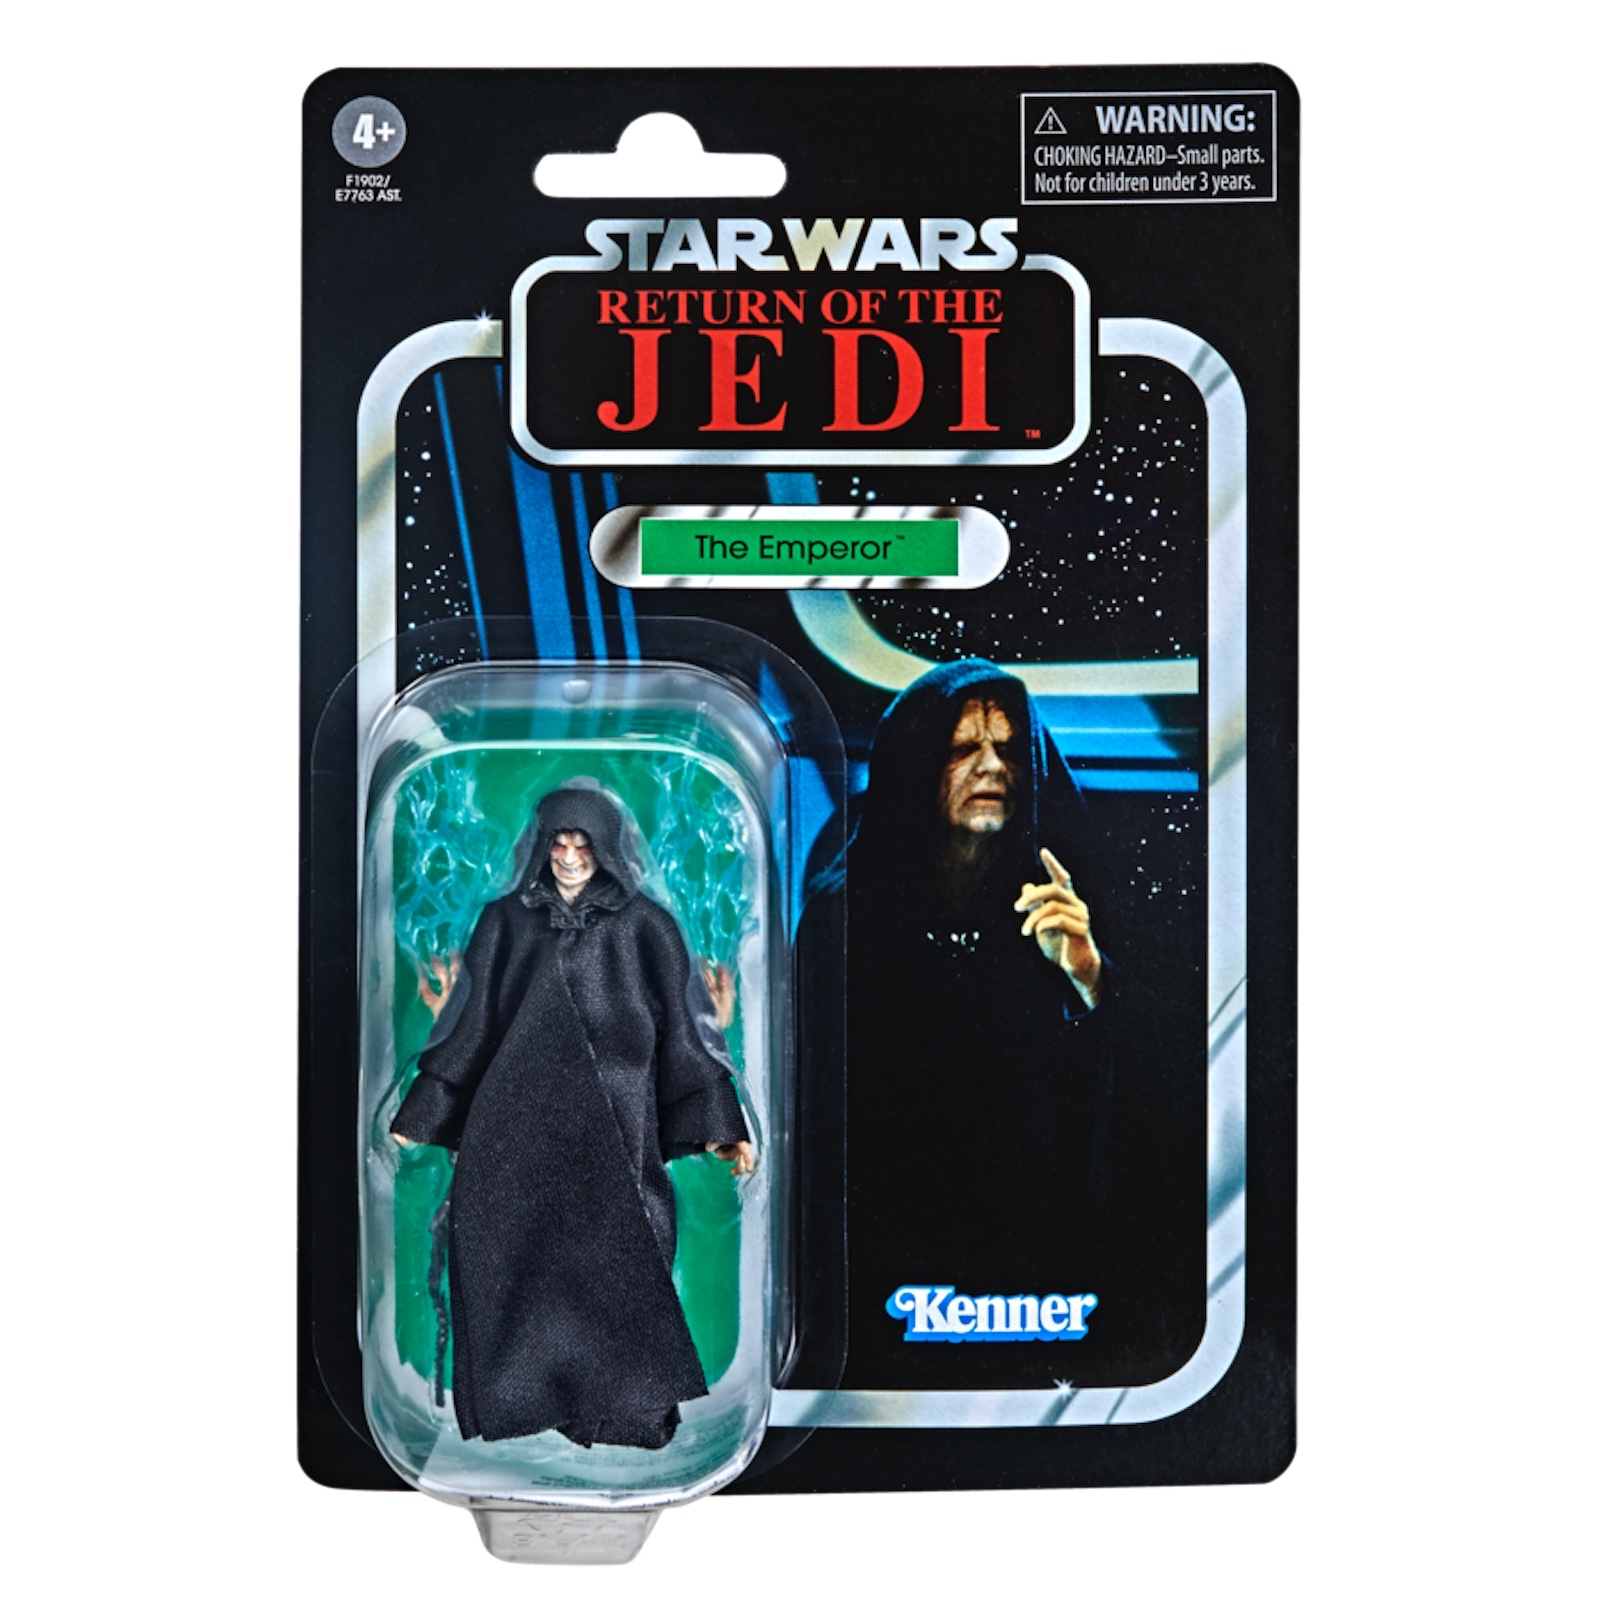 VC-The-Emperor-ROTJ-Carded.jpg